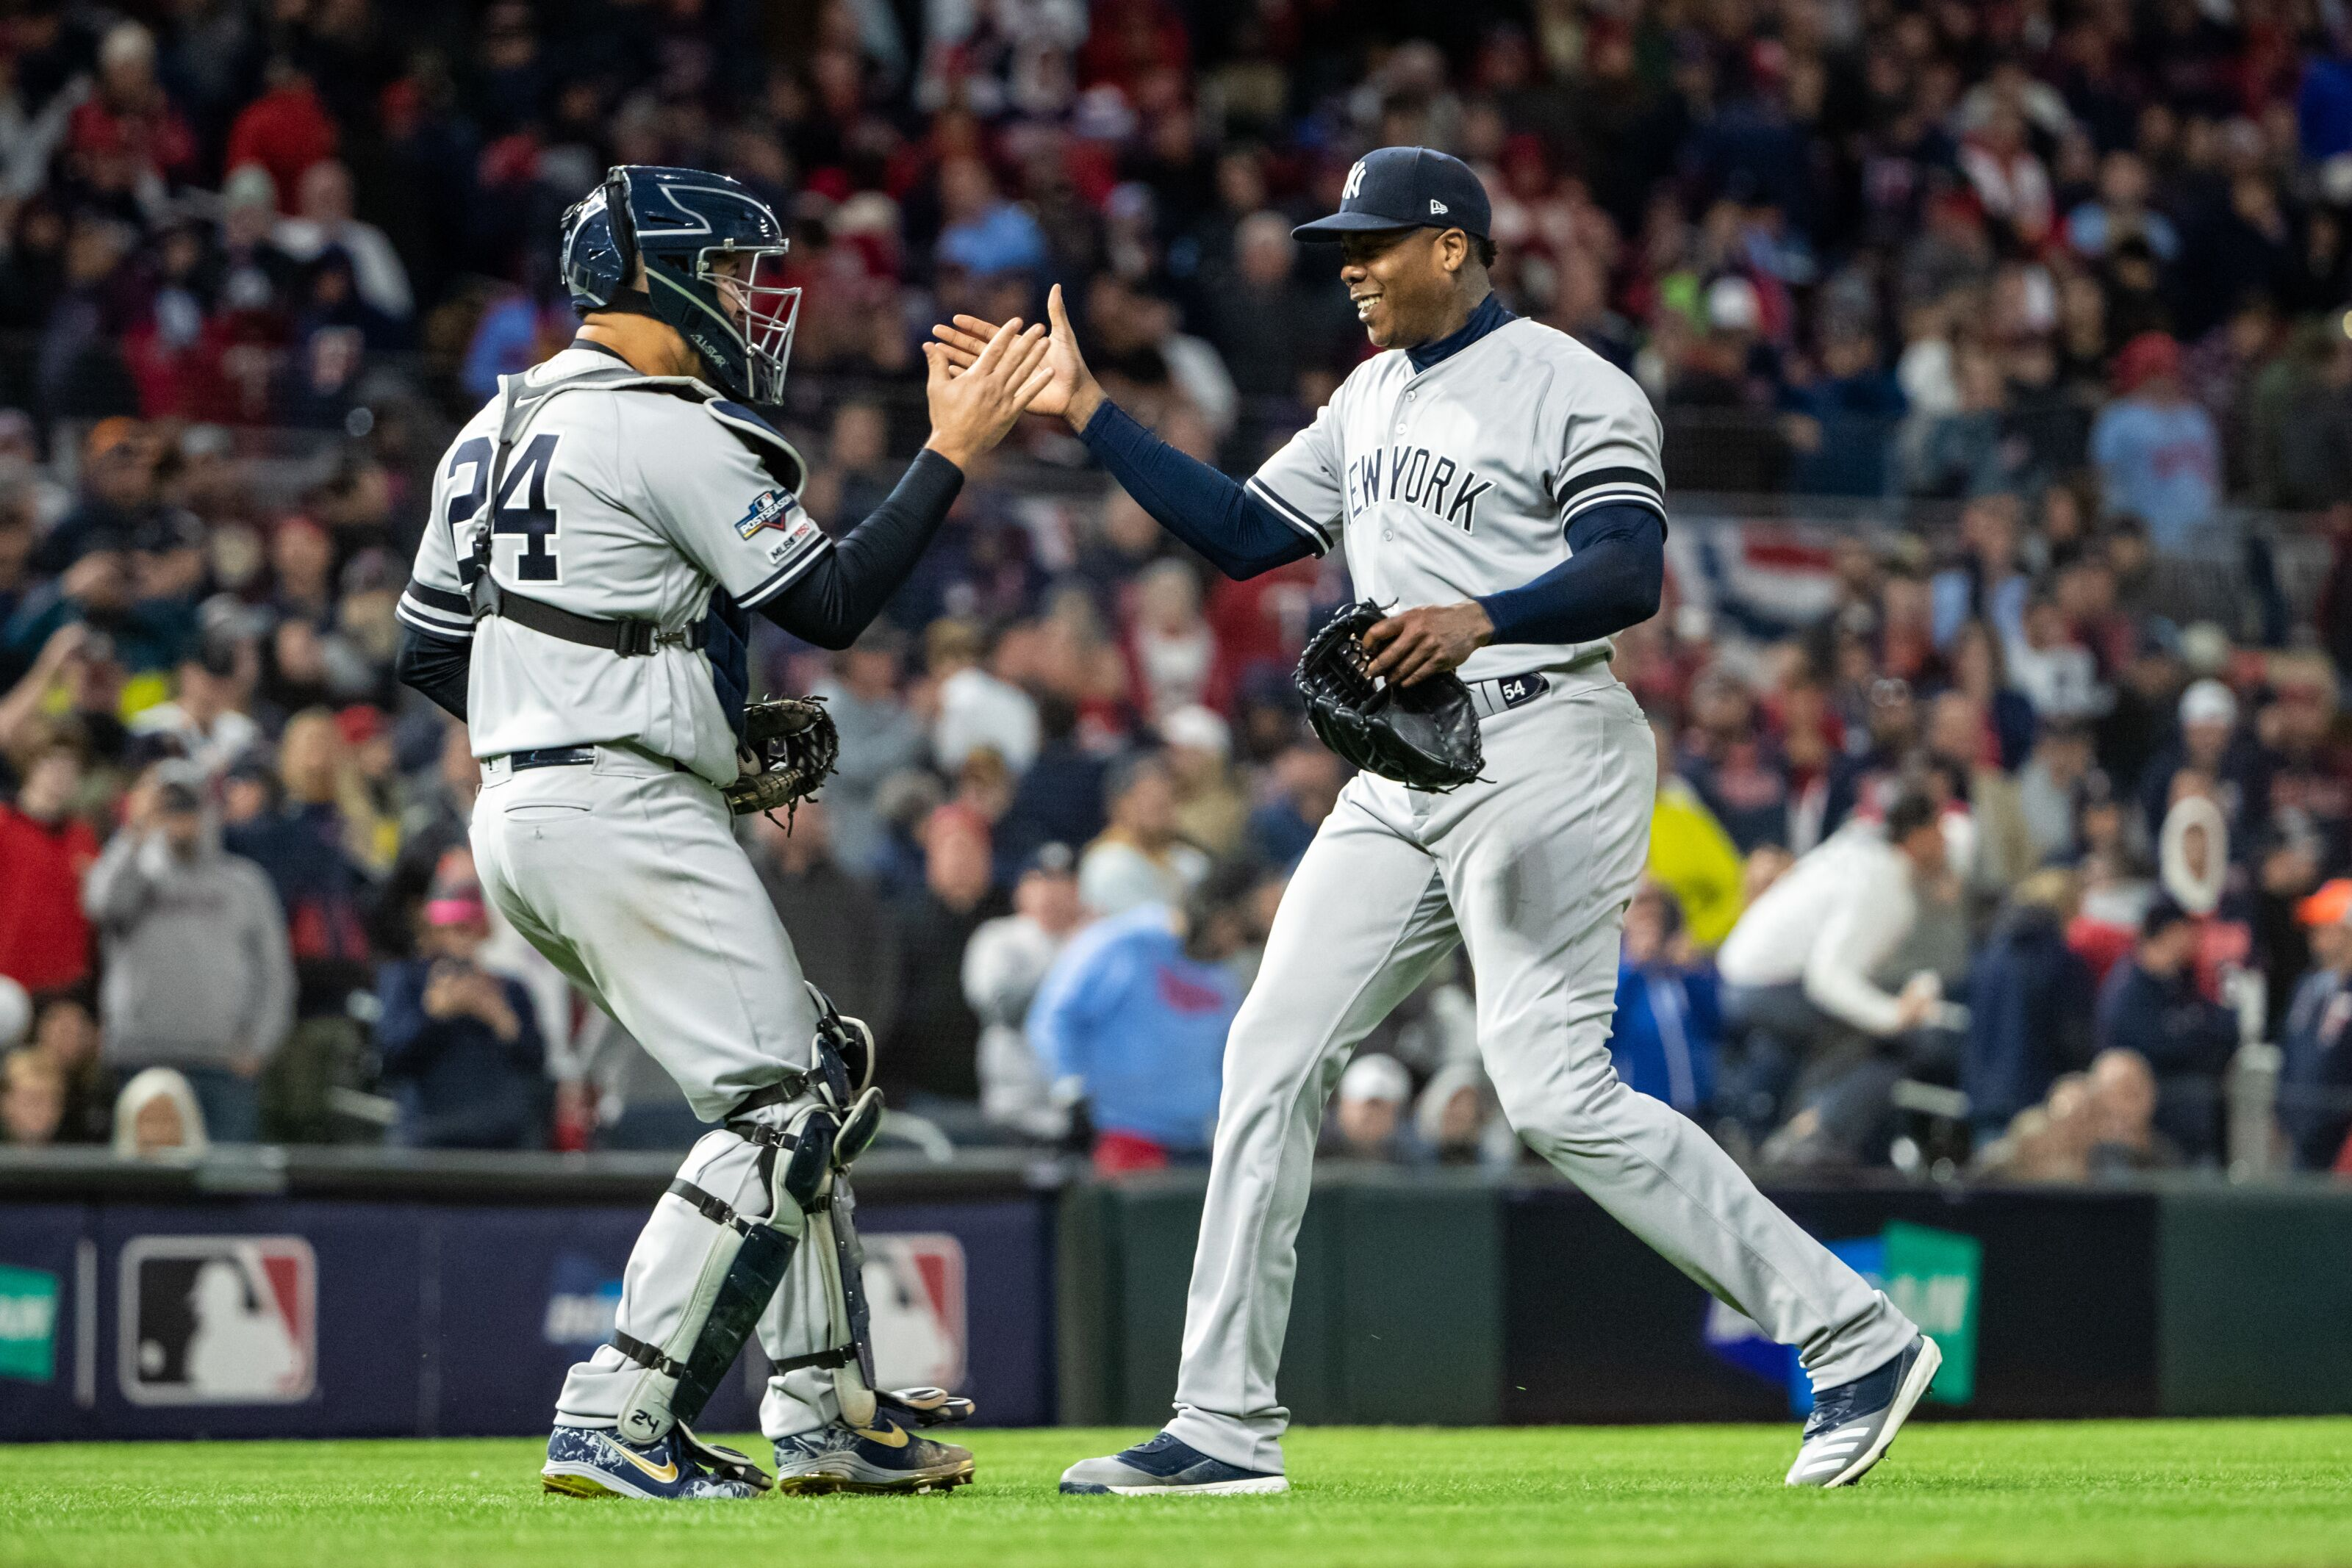 Yankees bringing back Aroldis Chapman was the first good offseason move